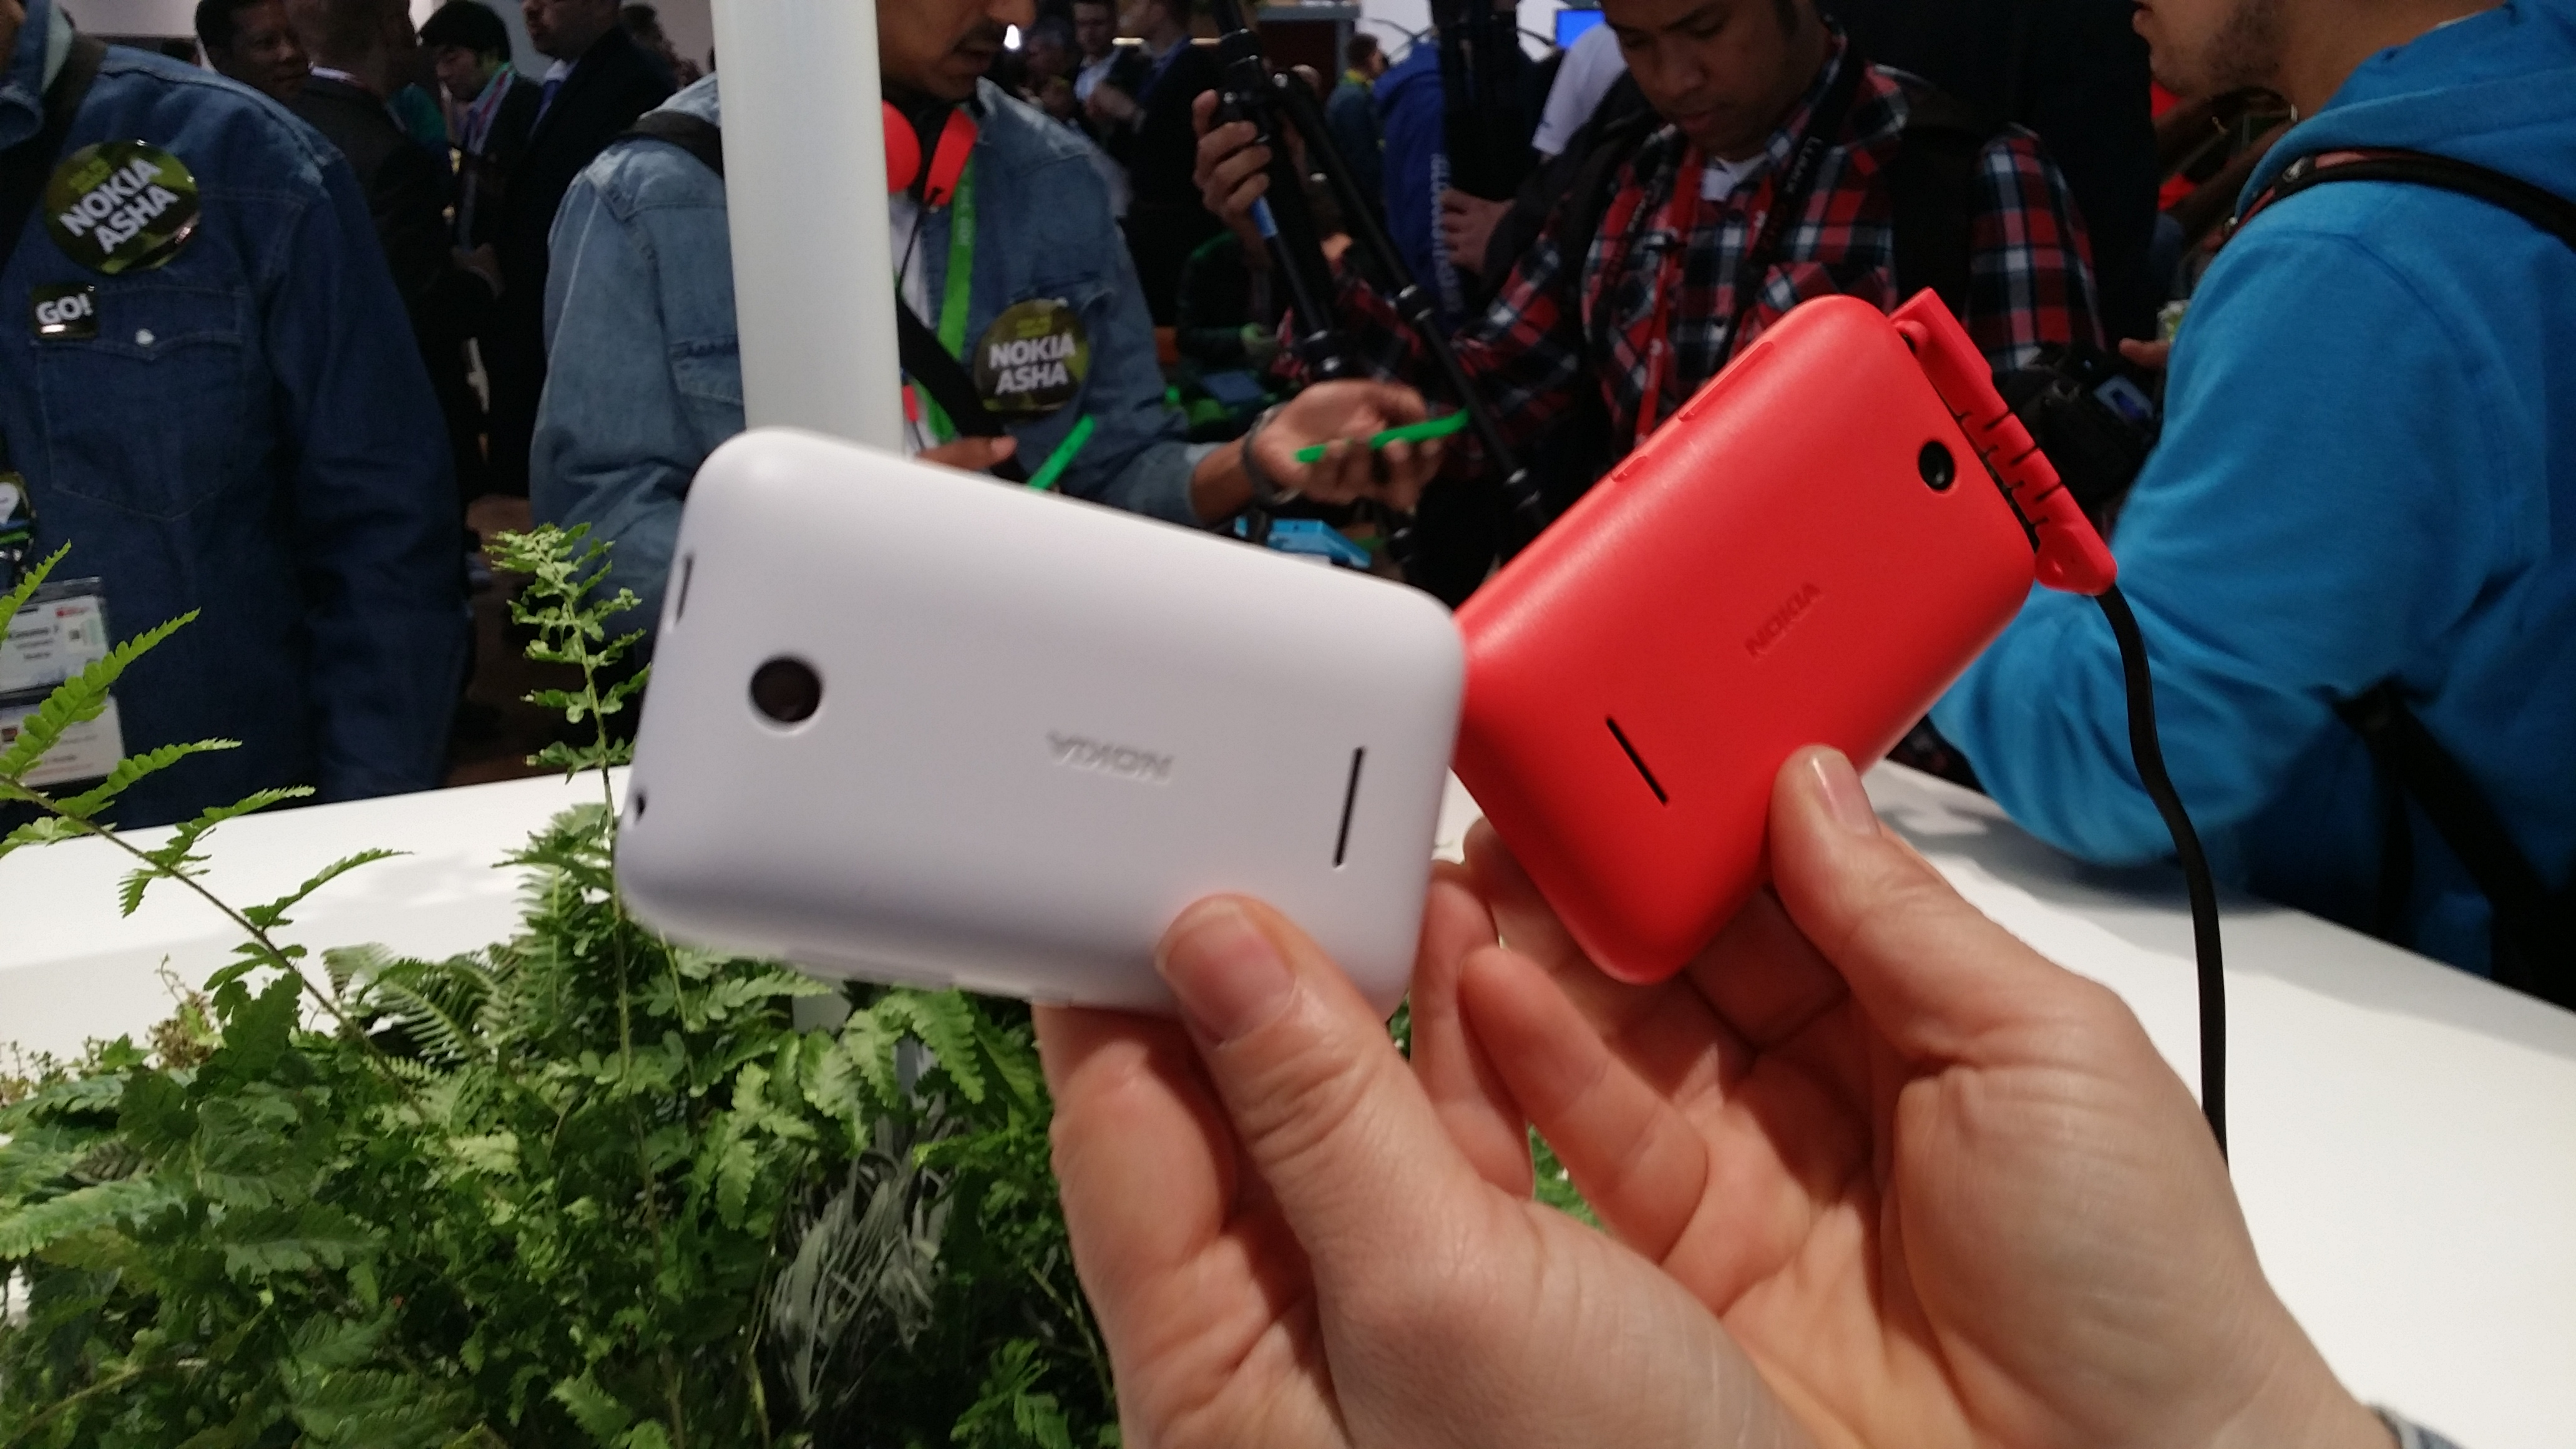 Asha 230 comes in a range of colors